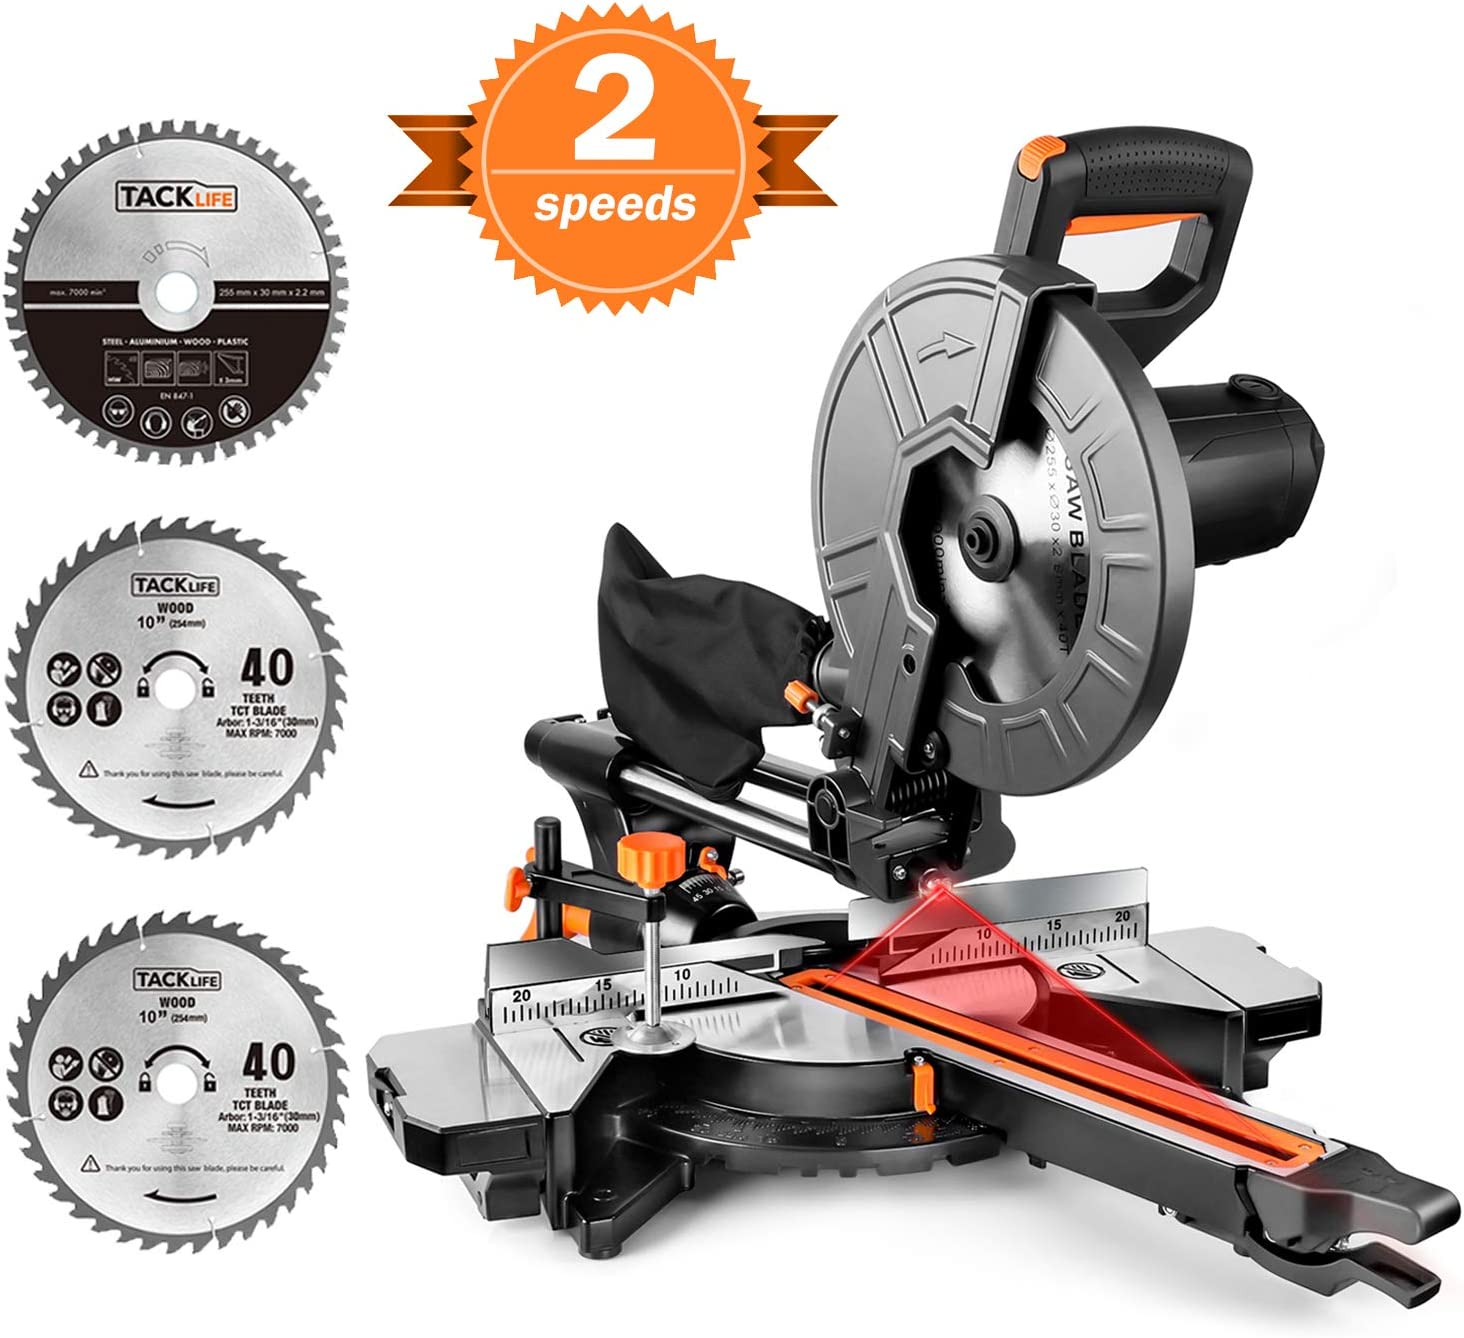 TACKLIFE Sliding Compound Miter Saw, Double Speed 3200/4500rpm, 2000W, 40T&48T Blades, 45° Bevel Cut with Laser Guide, Extensible Table, Dust Bag - EMS01A